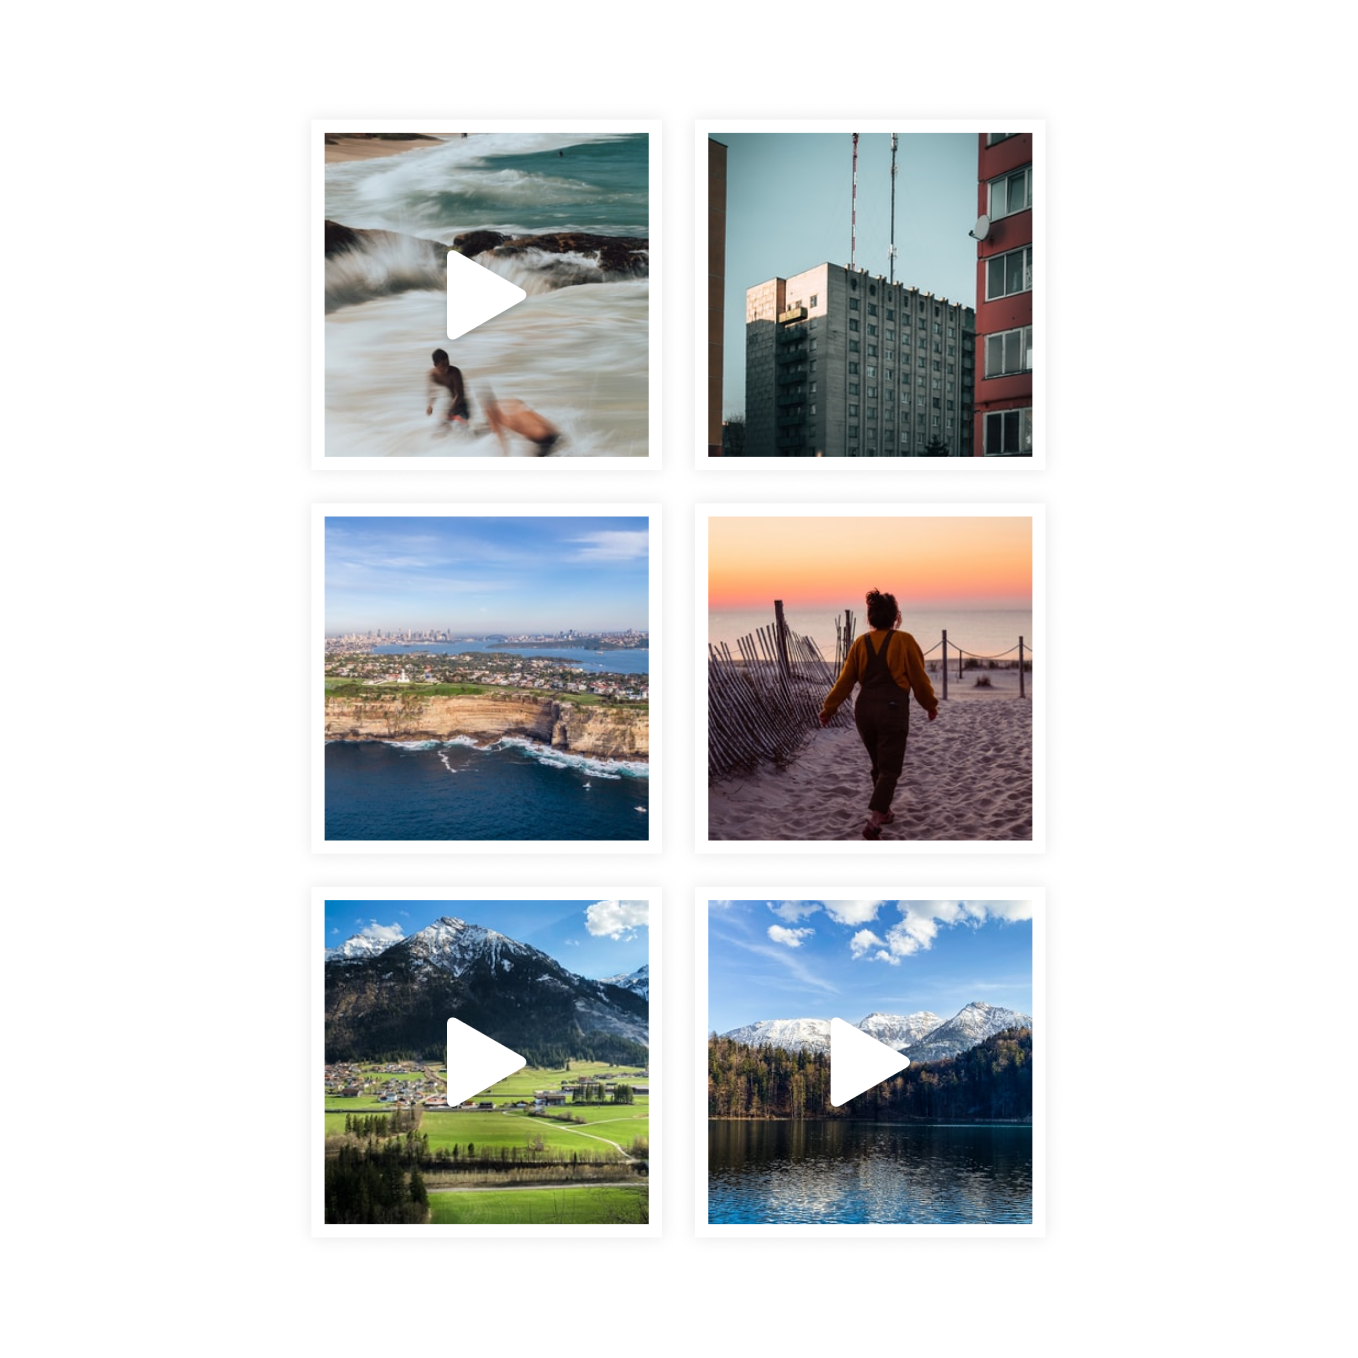 Slik Photos - Screenshot of Slik Photos gallery to show you can view photos, videos and live photos as part of your gallery.